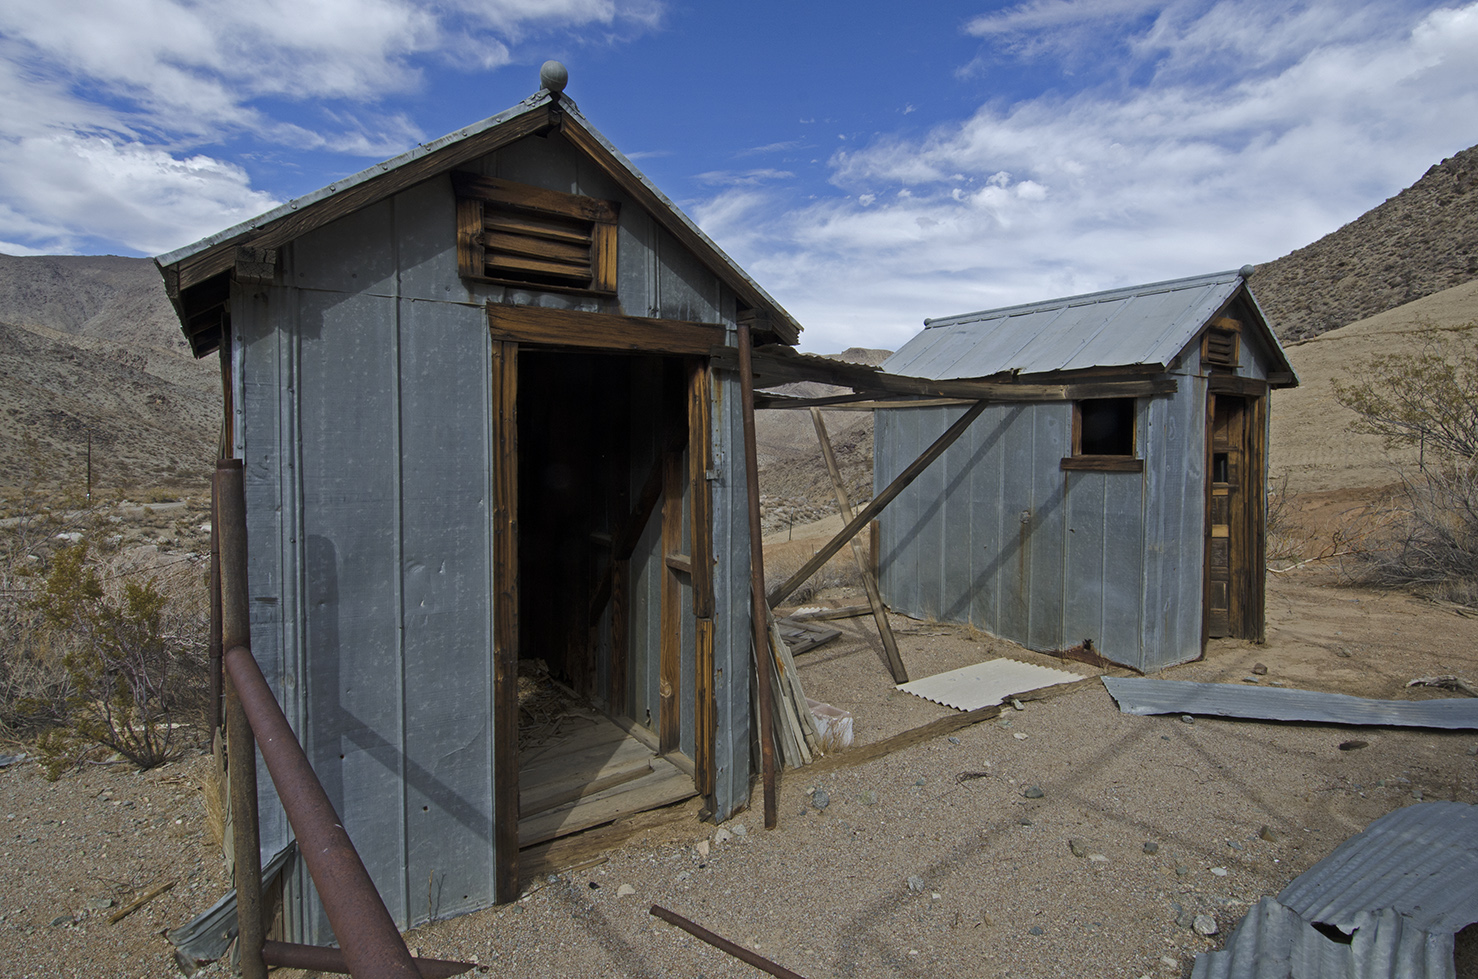 A pair of outhouses. His and hers?